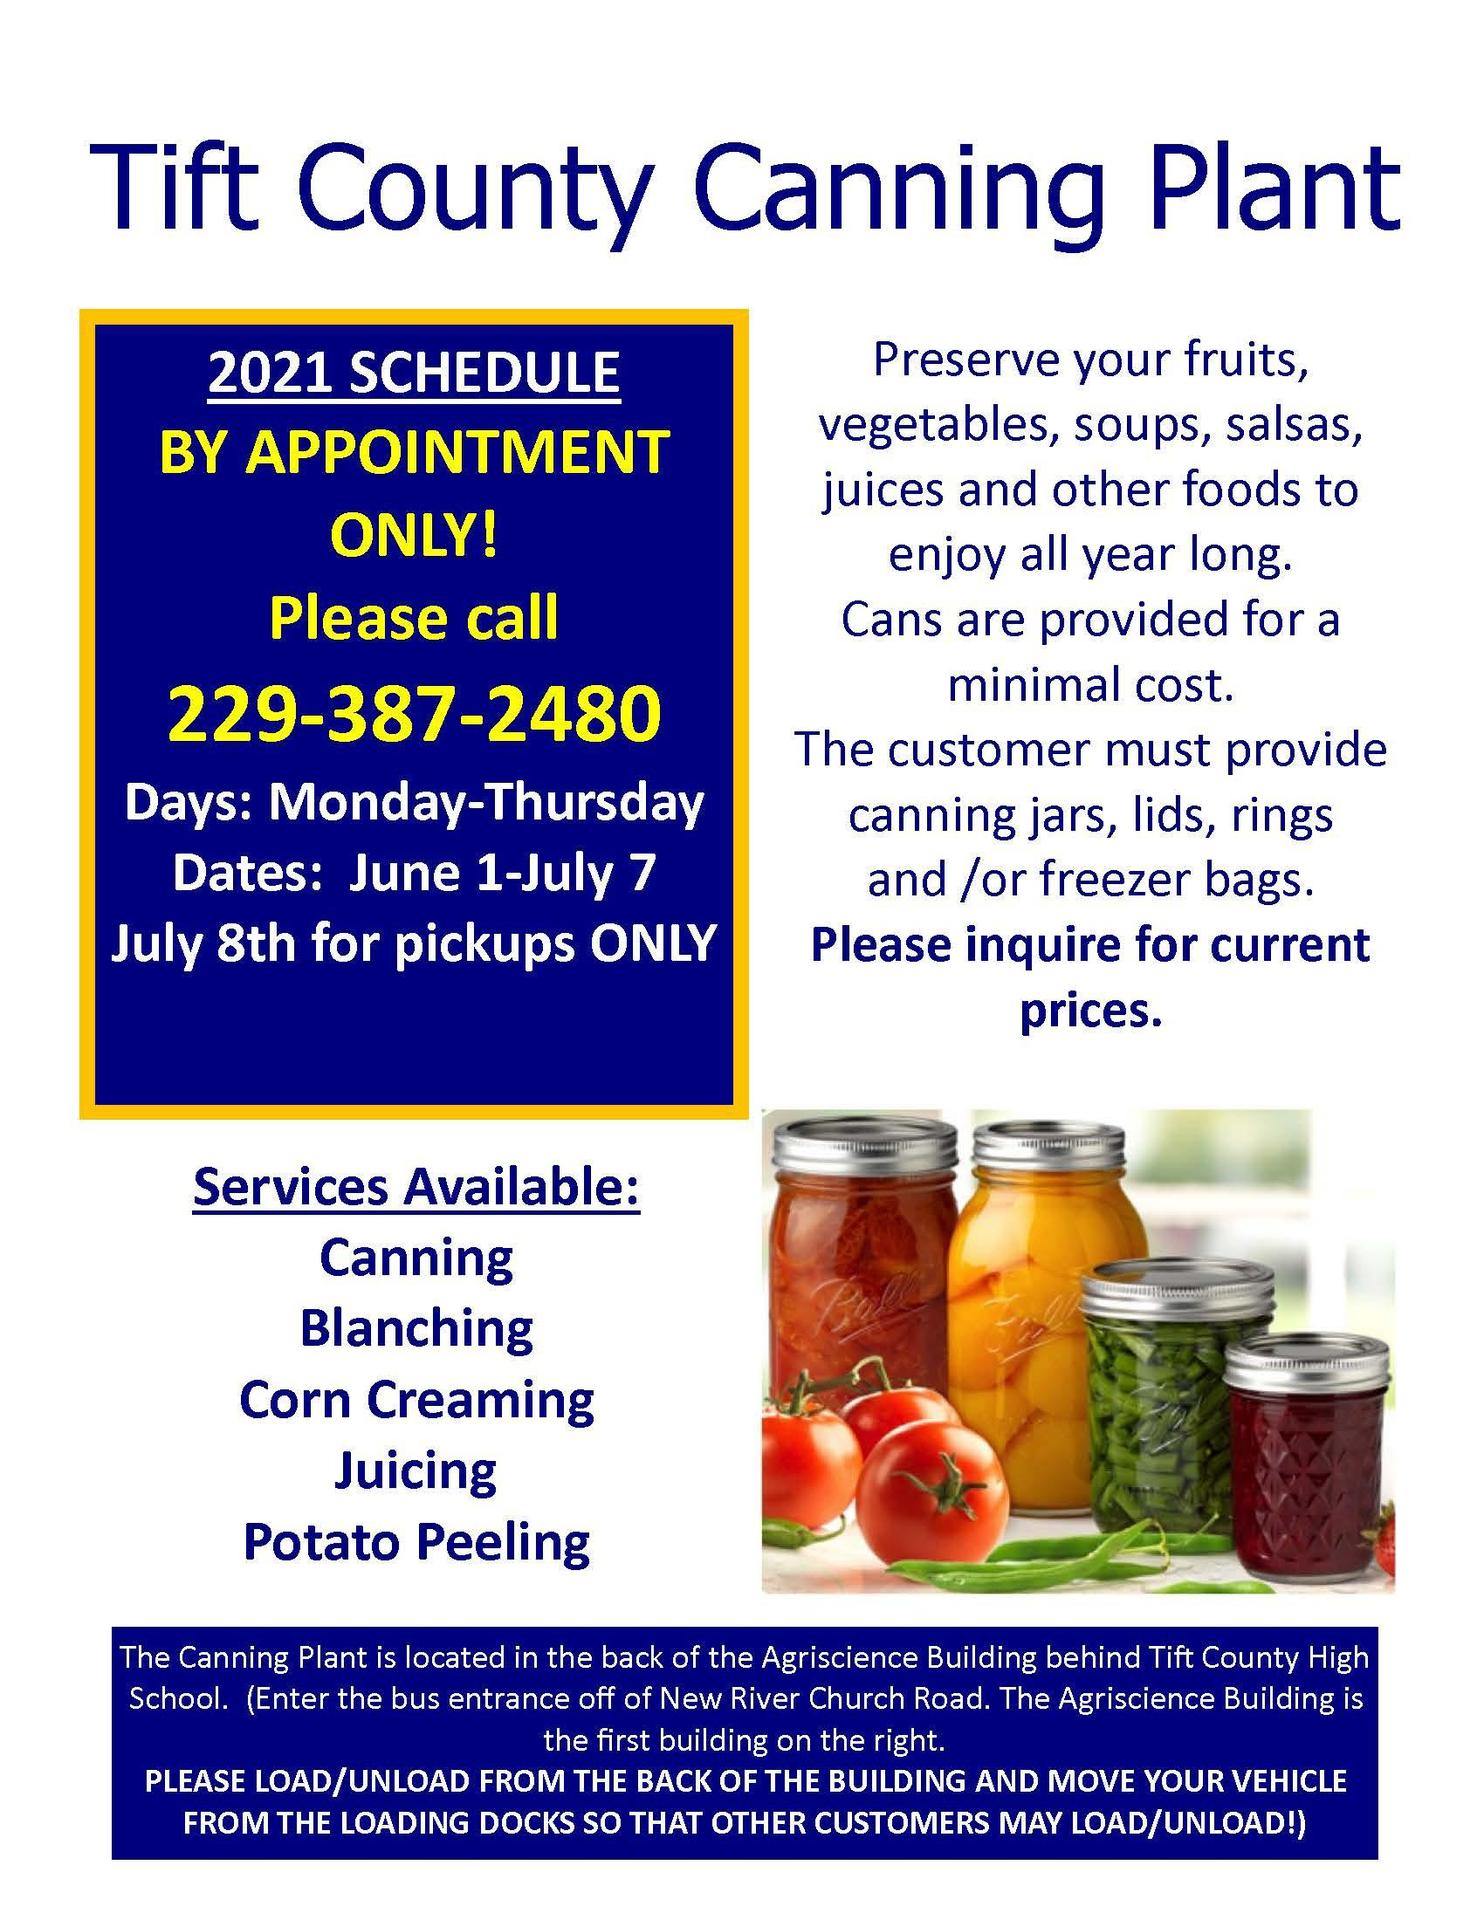 Canning Plant Flyer